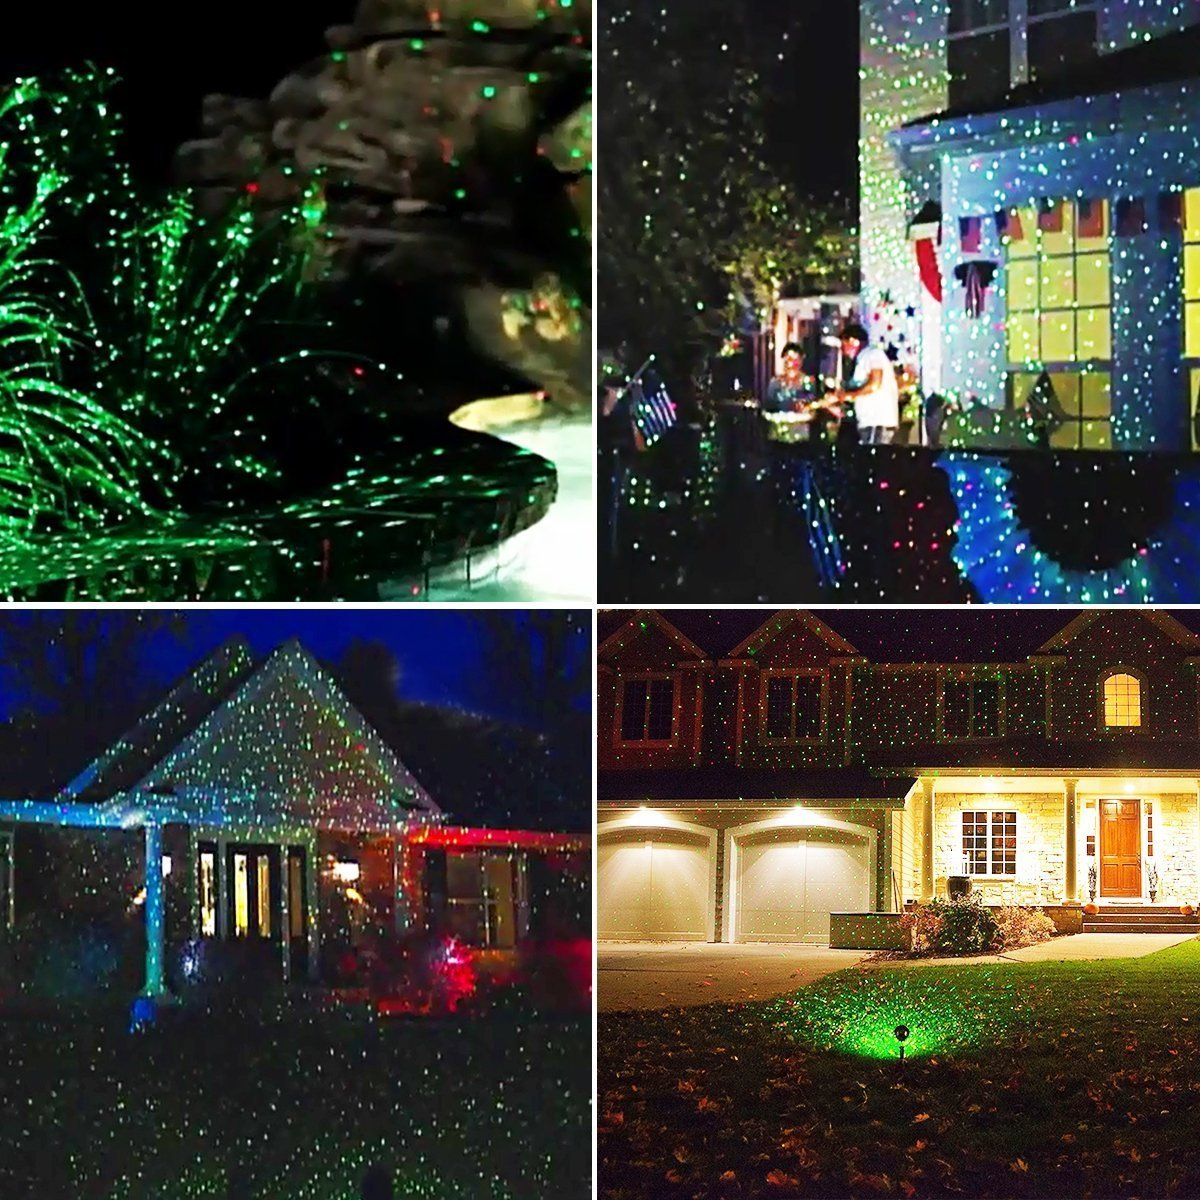 Amazon starry sky outdoor laser lights 7w red green 2 in 1 amazon starry sky outdoor laser lights 7w red green 2 in 1 dynamic lighting star projector laser spotlight light waterproof for home garden mozeypictures Image collections